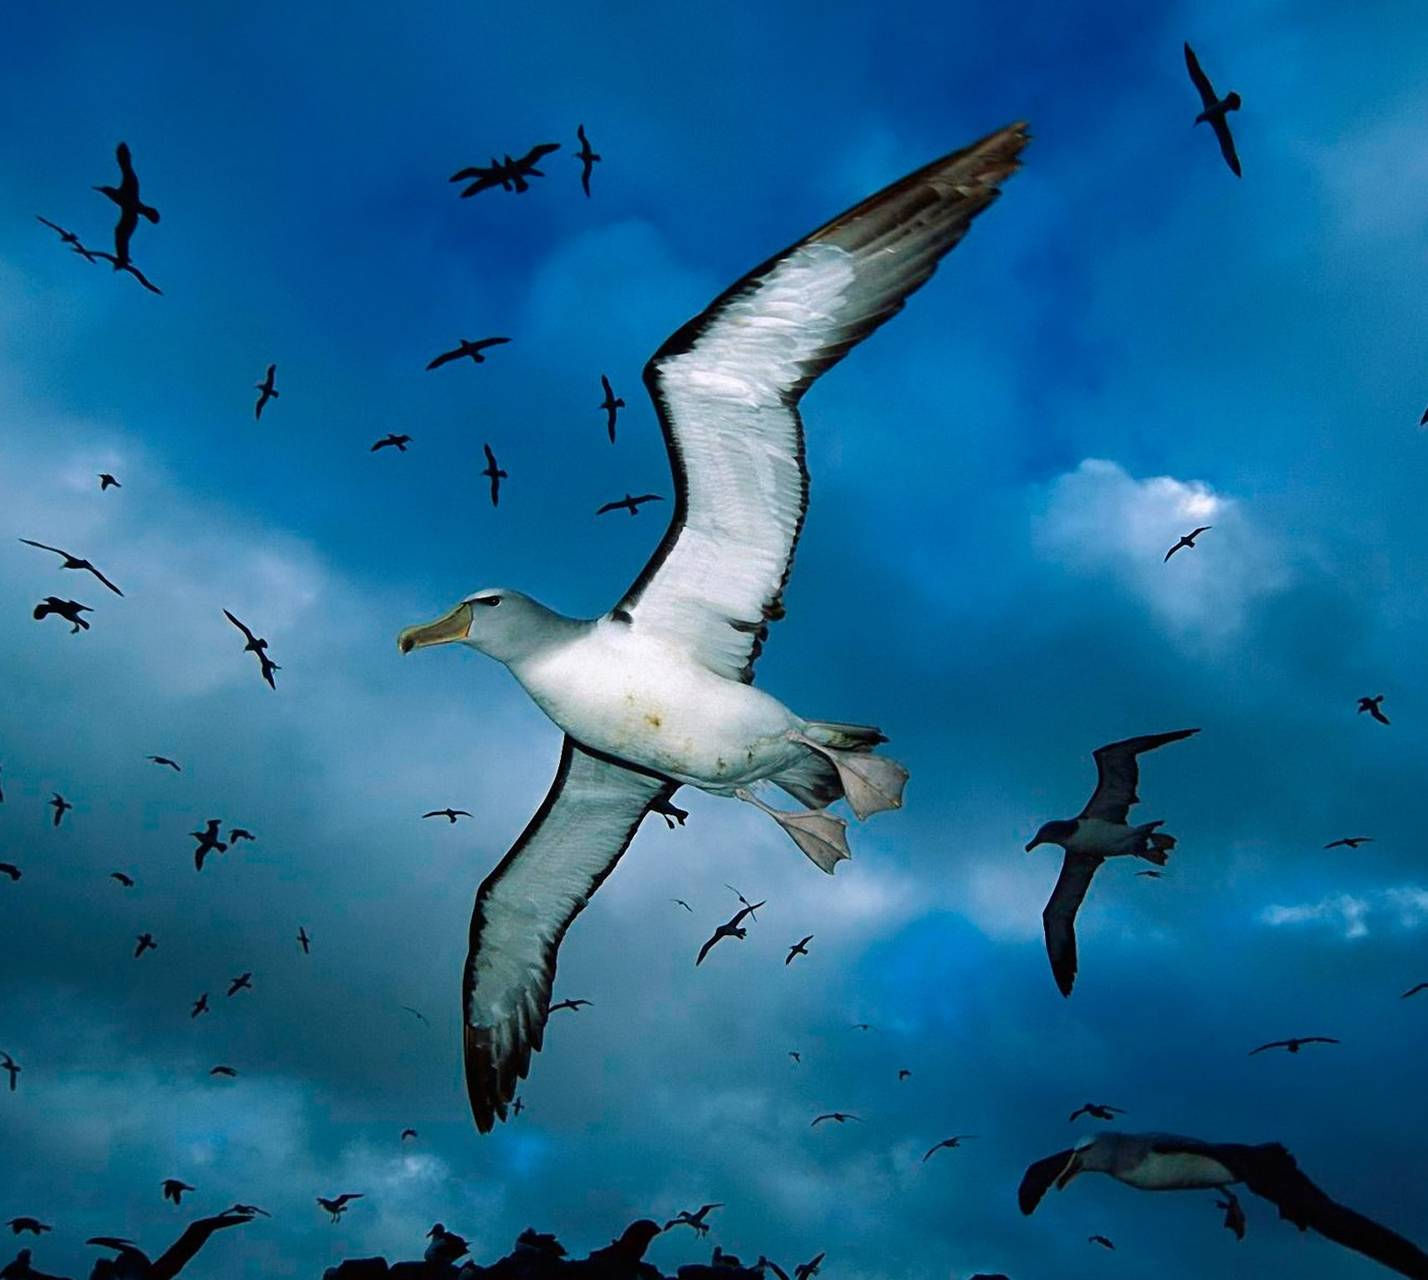 Seagulls Flock Wallpaper By Isultaani Bc Free On Zedge